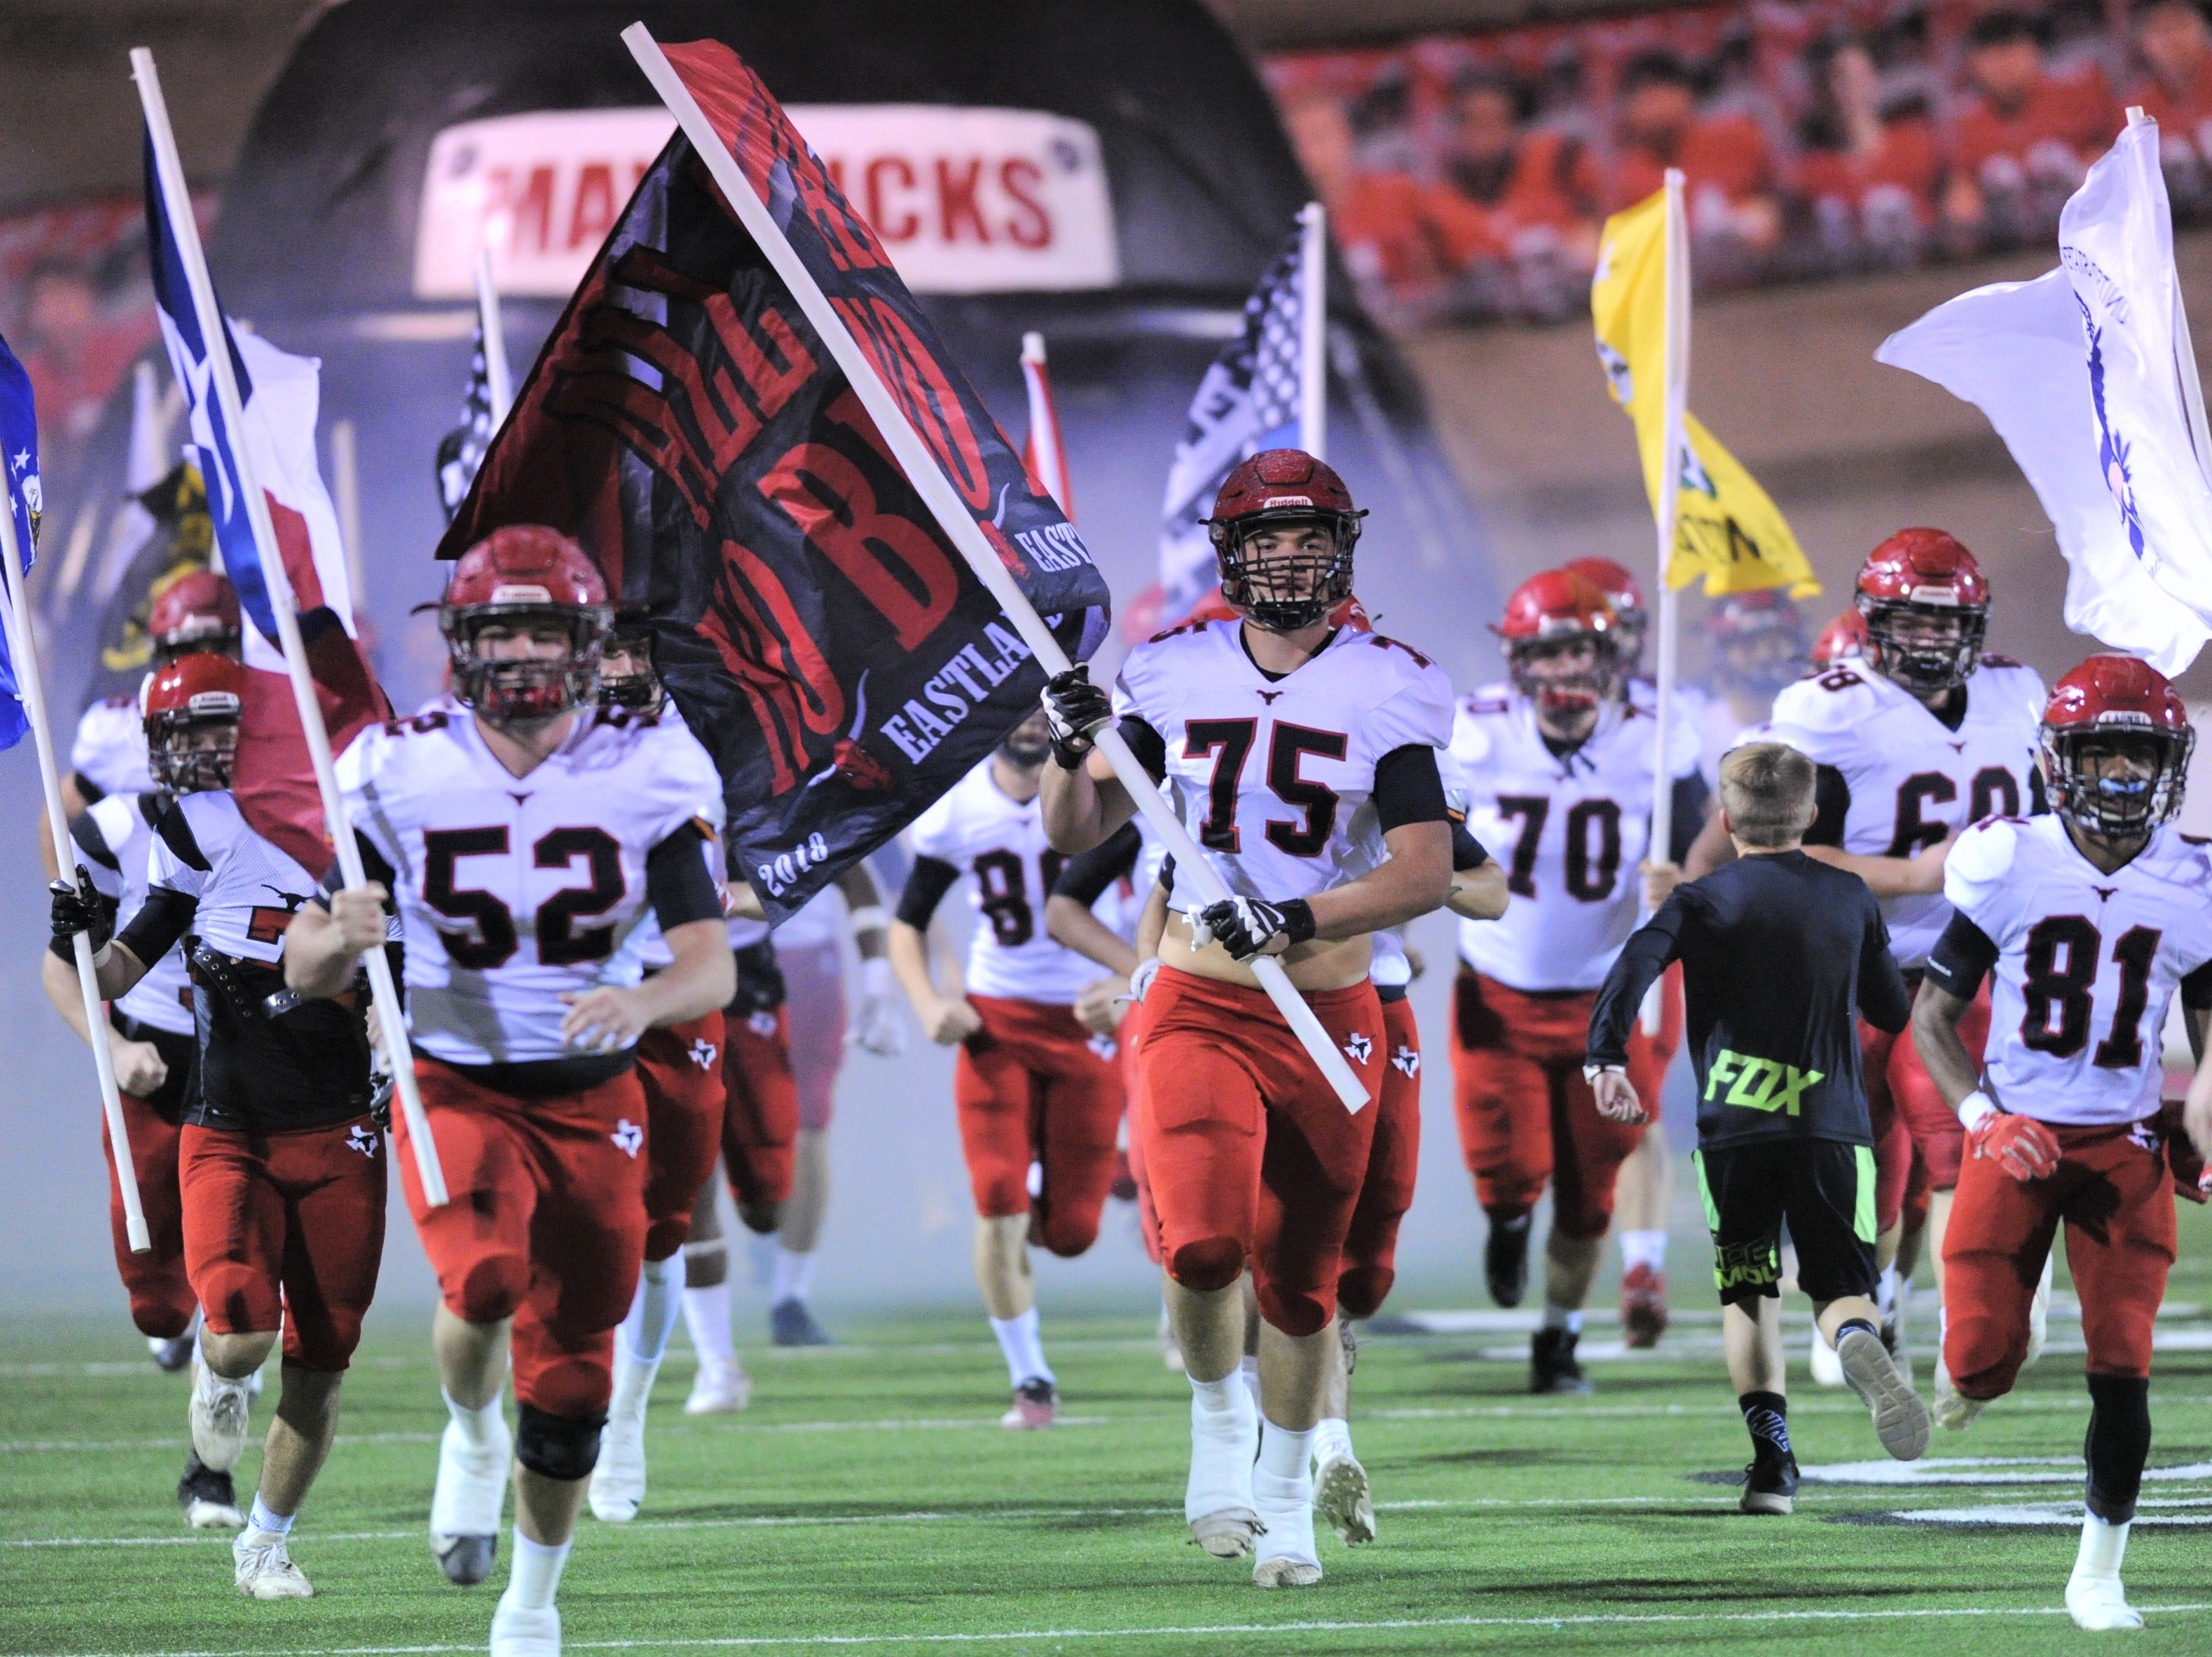 Eastland players take the field before the Mavericks game against Shallowater. Shallowater beat the Mavericks 56-21 in the Region I-3A Division I semifinal playoff game Thursday, Nov. 29, 2018, at the Mustang Bowl in Sweetwater.